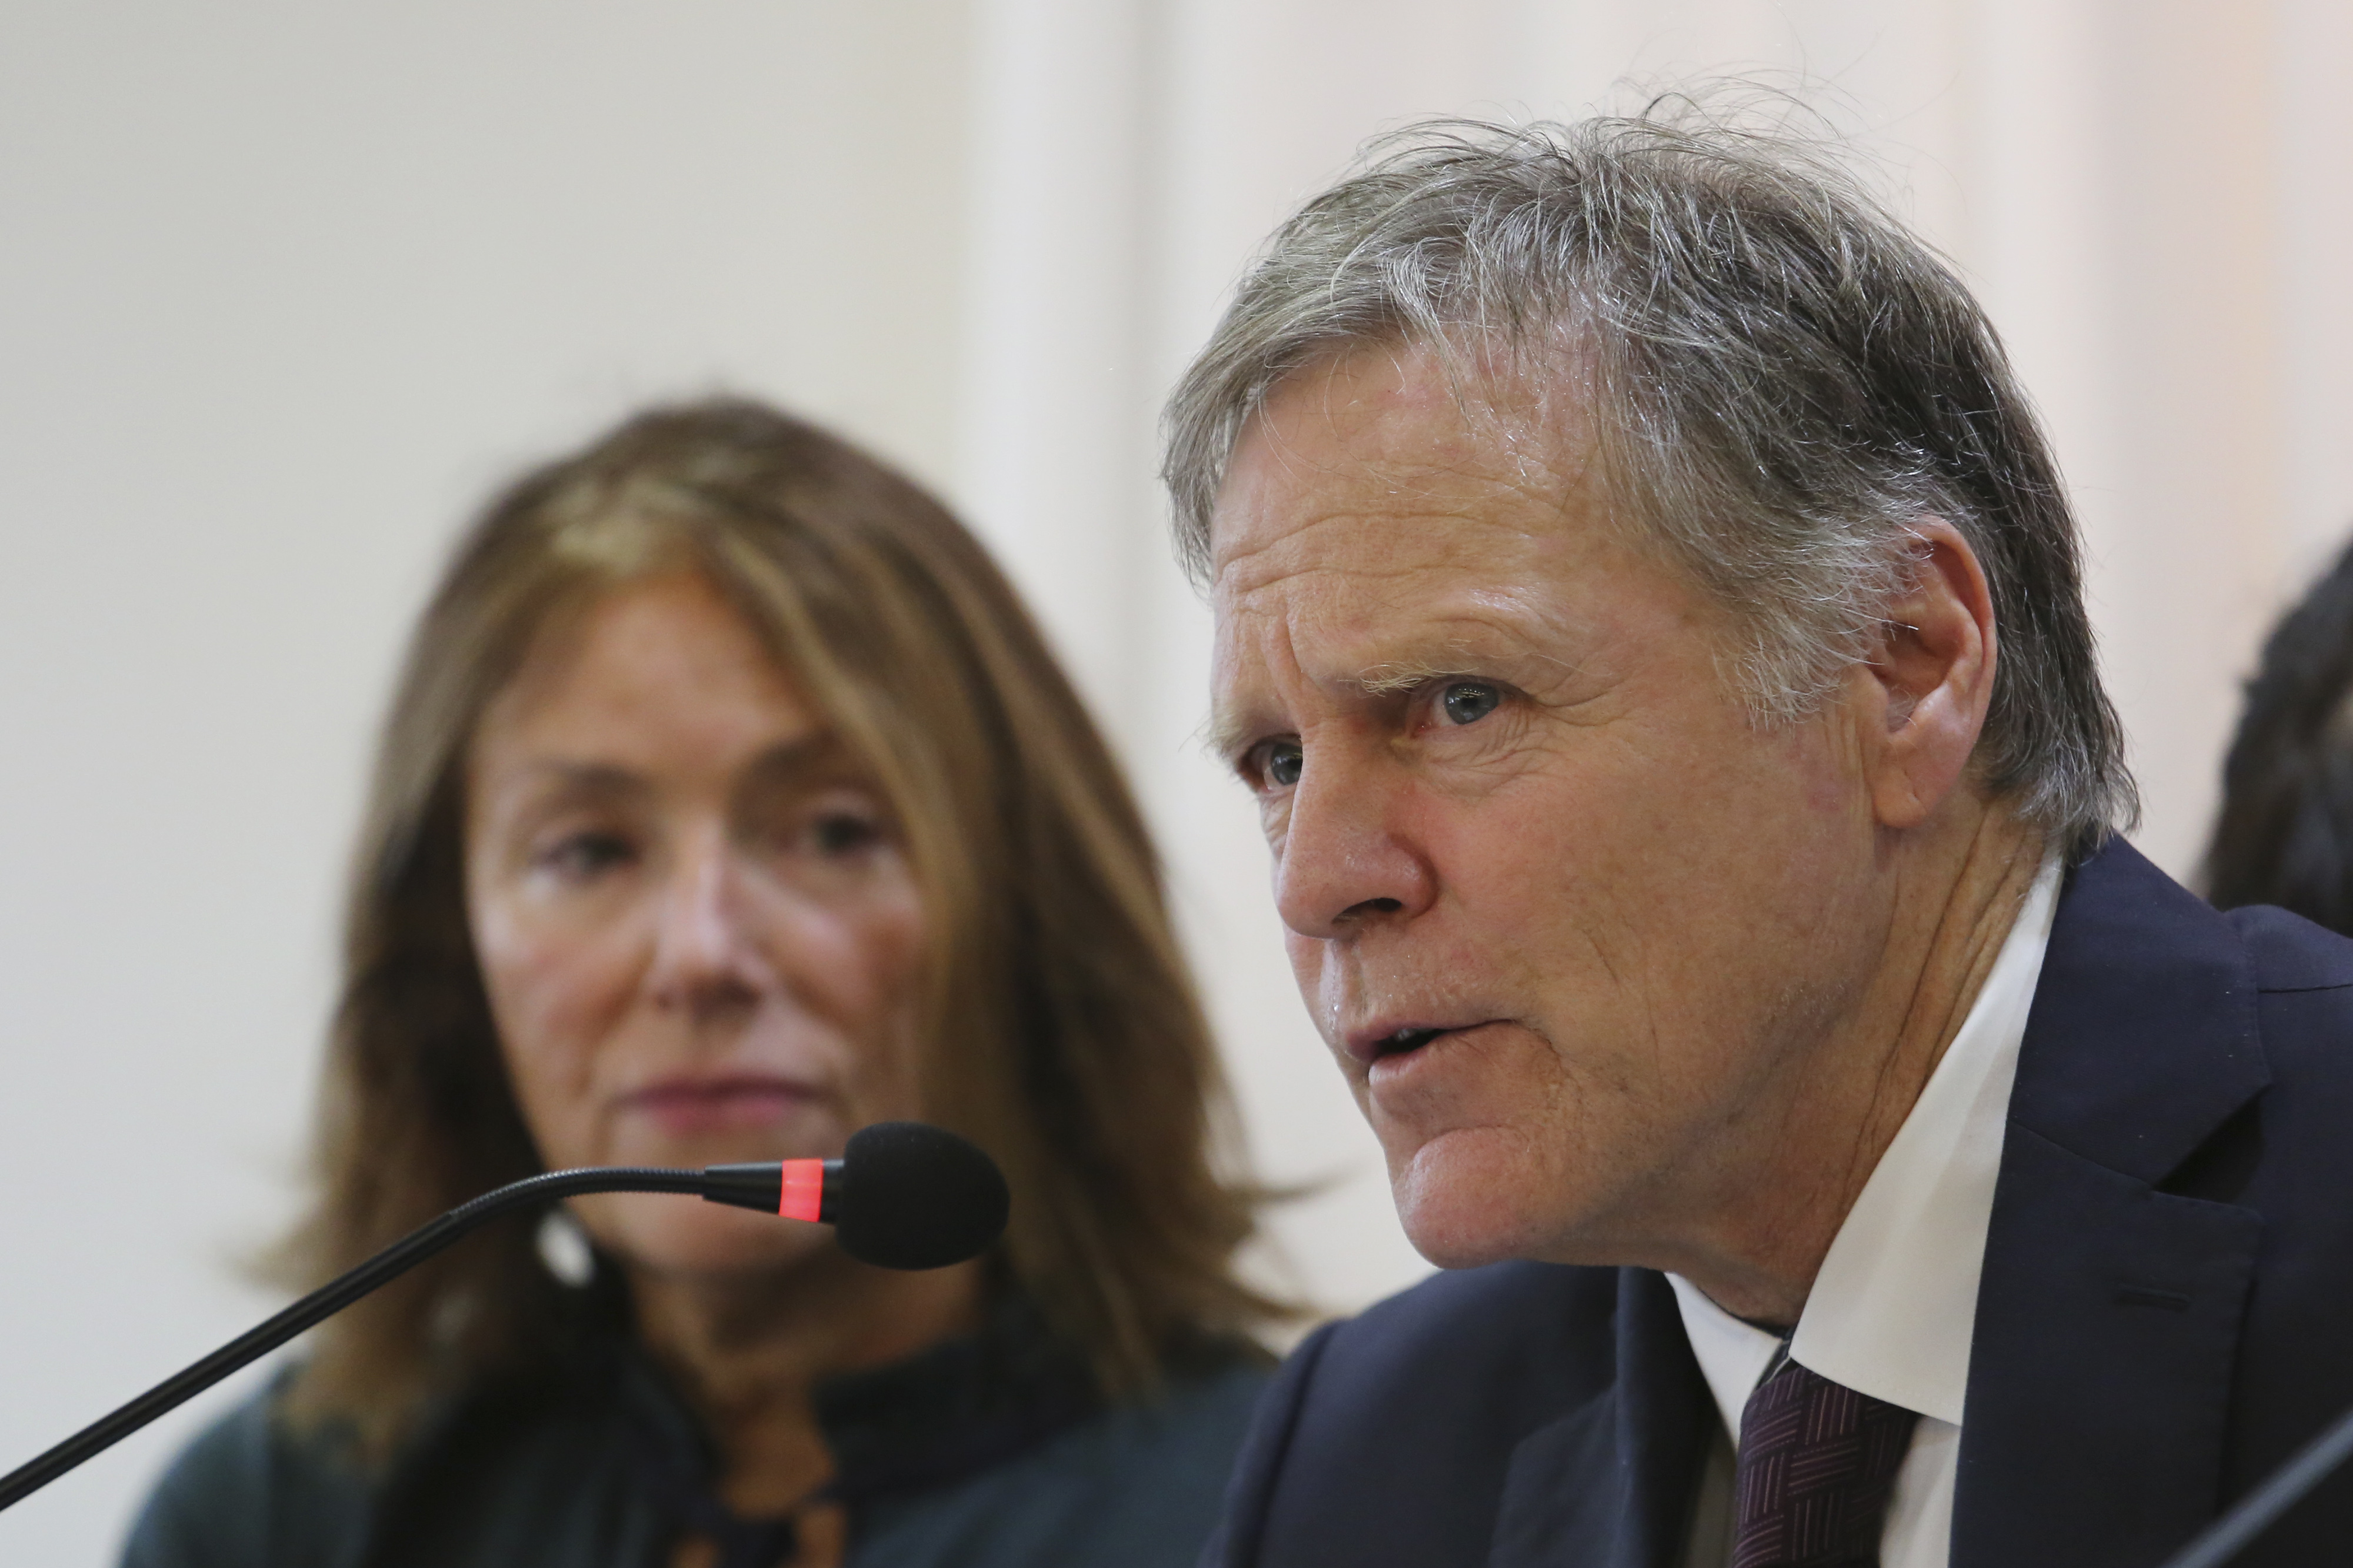 Fred and Cindy Warmbier, parents of Otto Warmbier who died after being released by North Korea, speak at a press conference in Seoul, South Korea, on Nov. 22, 2019.